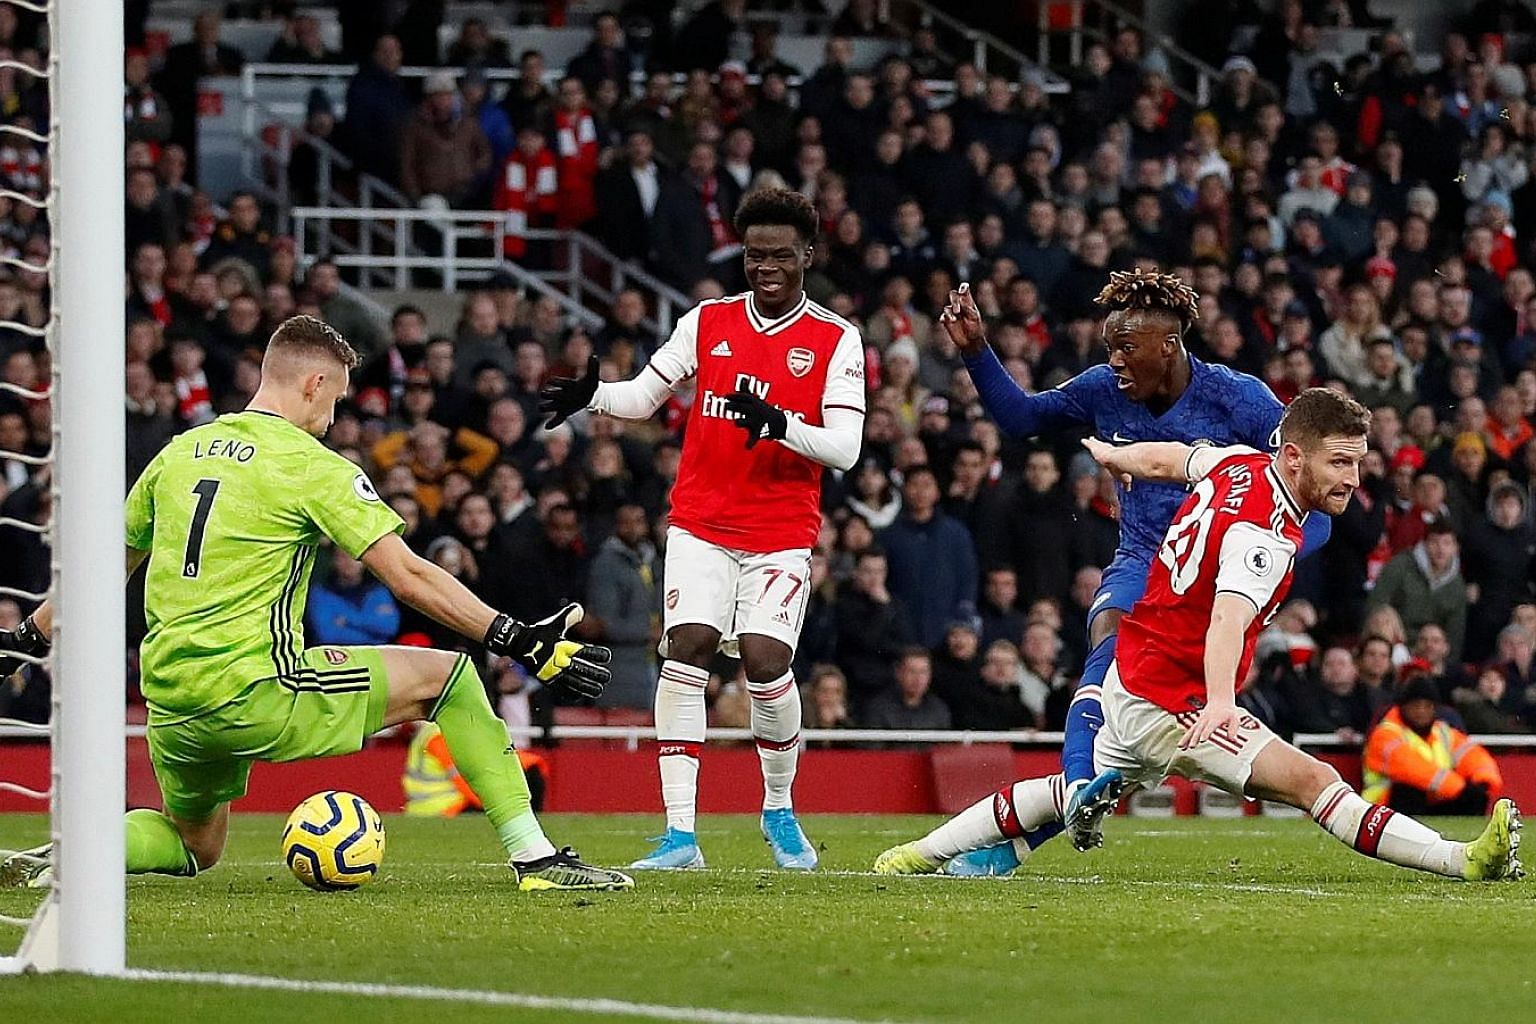 Tammy Abraham shooting through the legs of Arsenal goalkeeper Bernd Leno to complete Chelsea's comeback and earn the visiting team a 2-1 win at the Emirates. The Blues had trailed at half-time to Pierre-Emerick Aubameyang's opener.